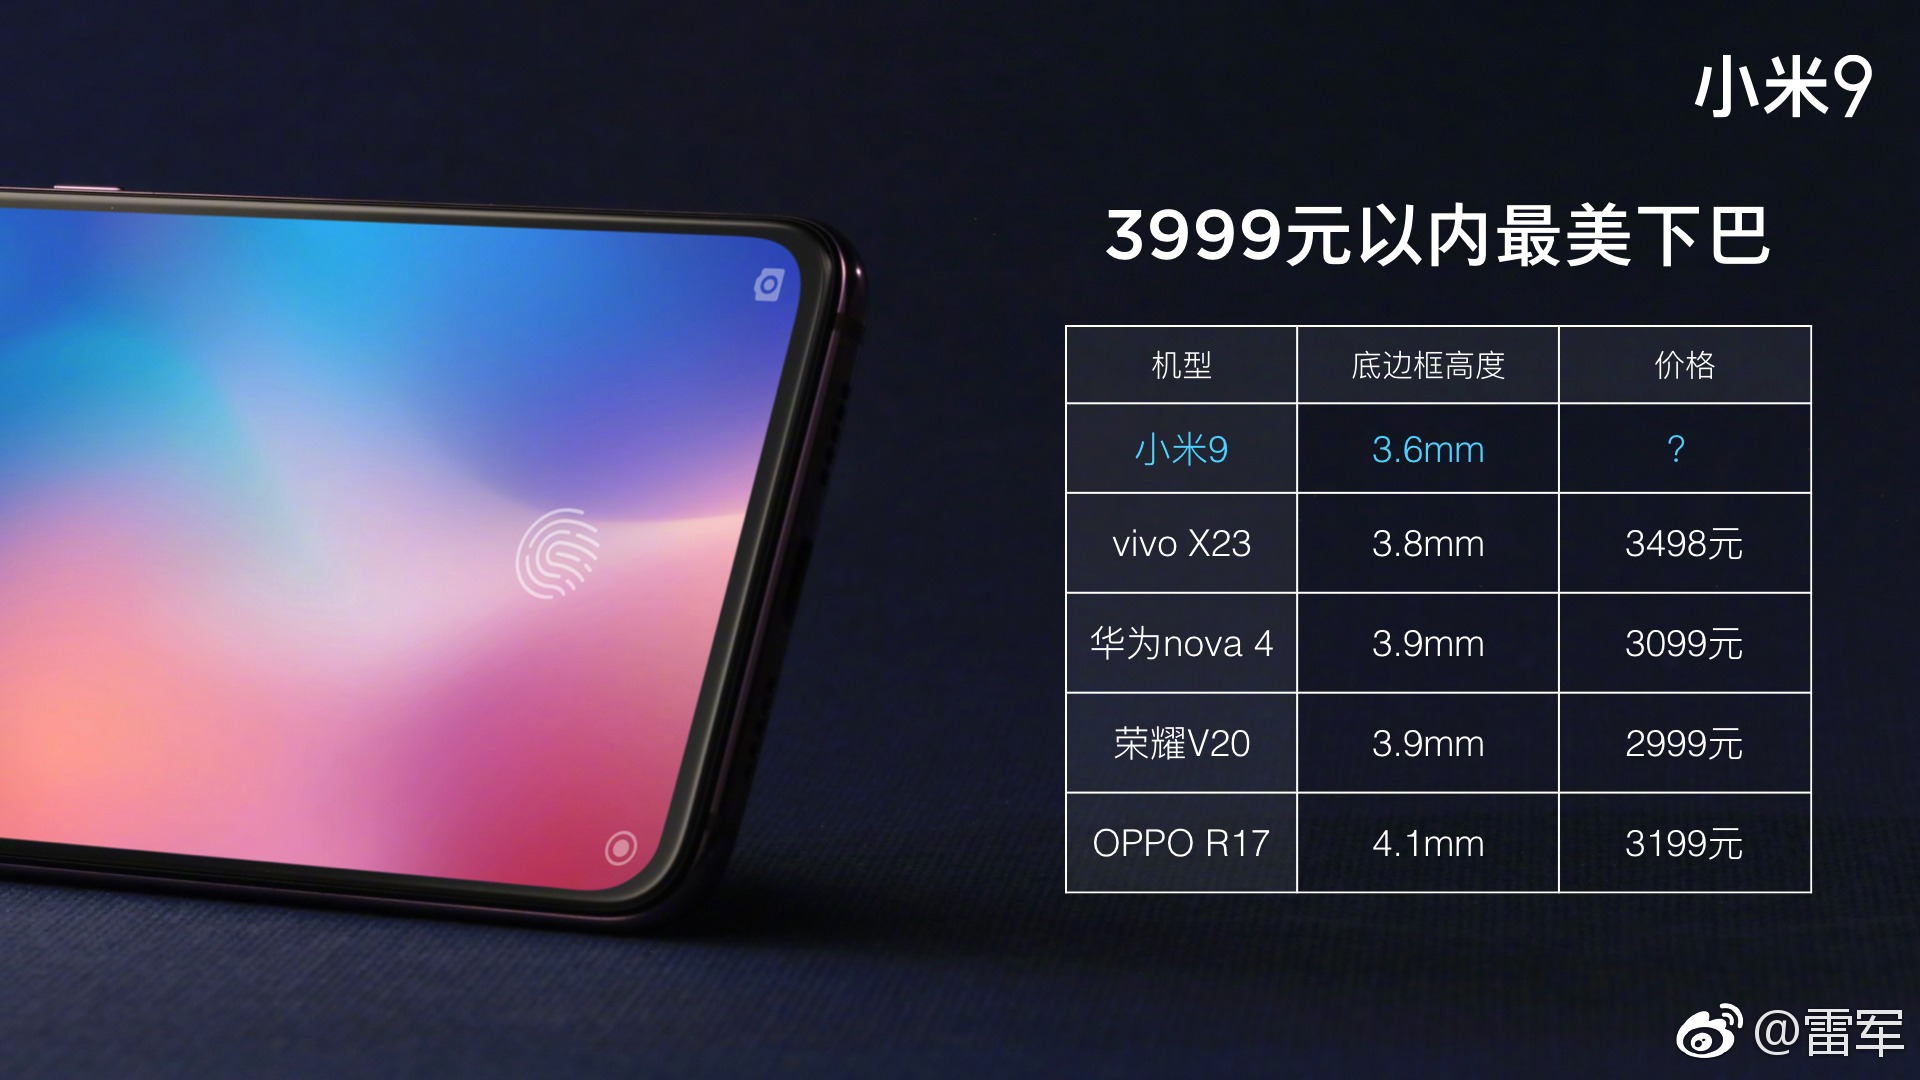 Xiaomi Mi 9 has a 40% narrower chin than the Mi 8